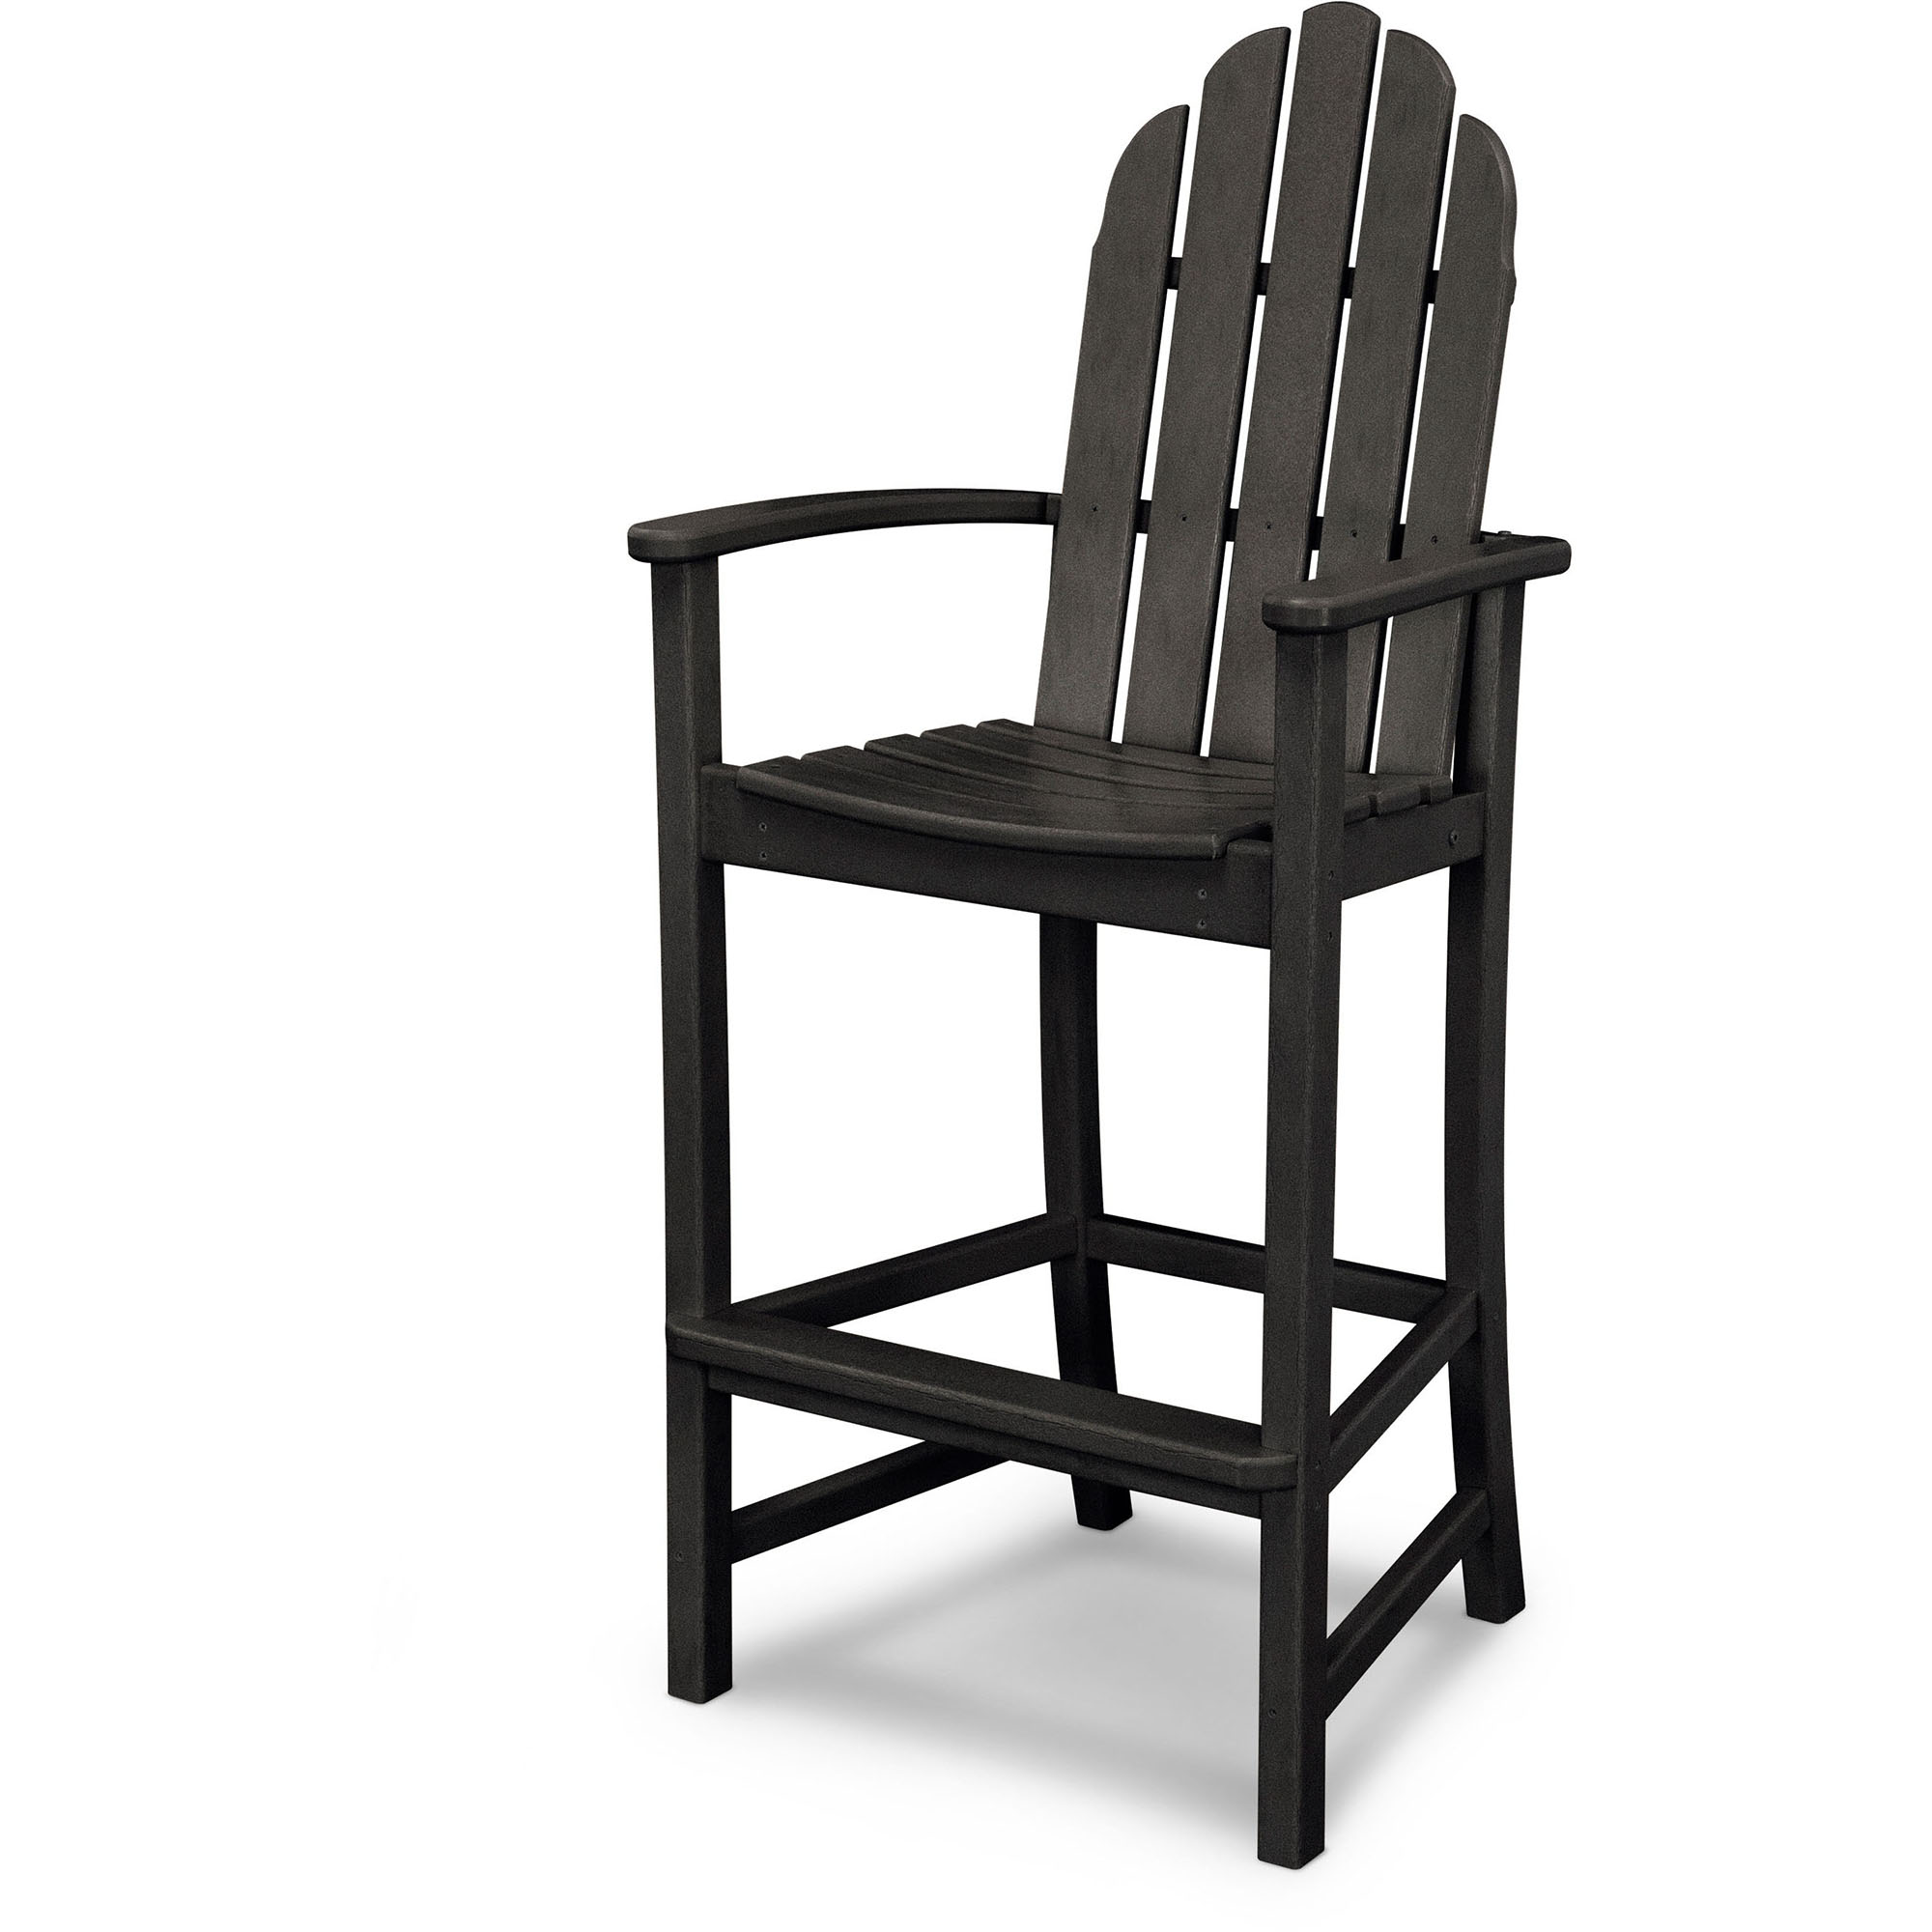 Superb Classic Adirondack Bar Chair Product Photo